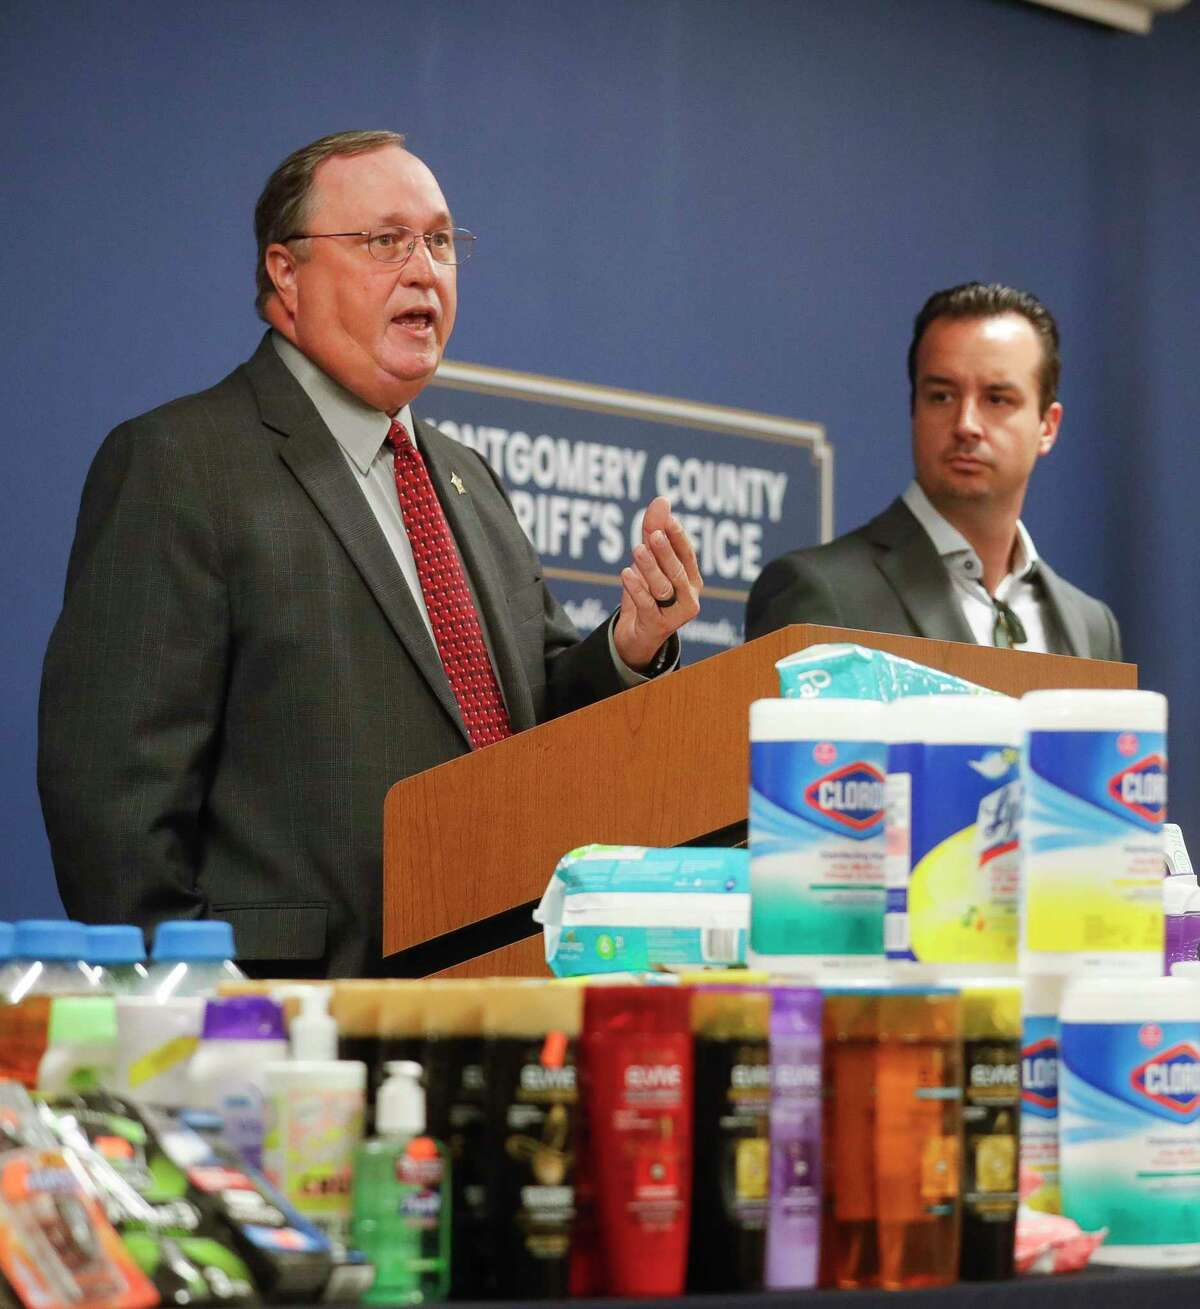 Montgomery County Sheriff's Office Capt. Tim Holifield speaks during a press conference where authorities detailed a criminal investigation involving the manipulation and use of coupons by several suspects totaling $40,000 in stolen merchandise, Tuesday, June 29, 2021, in Conroe. The stolen items were organized and donated to various local organizations.